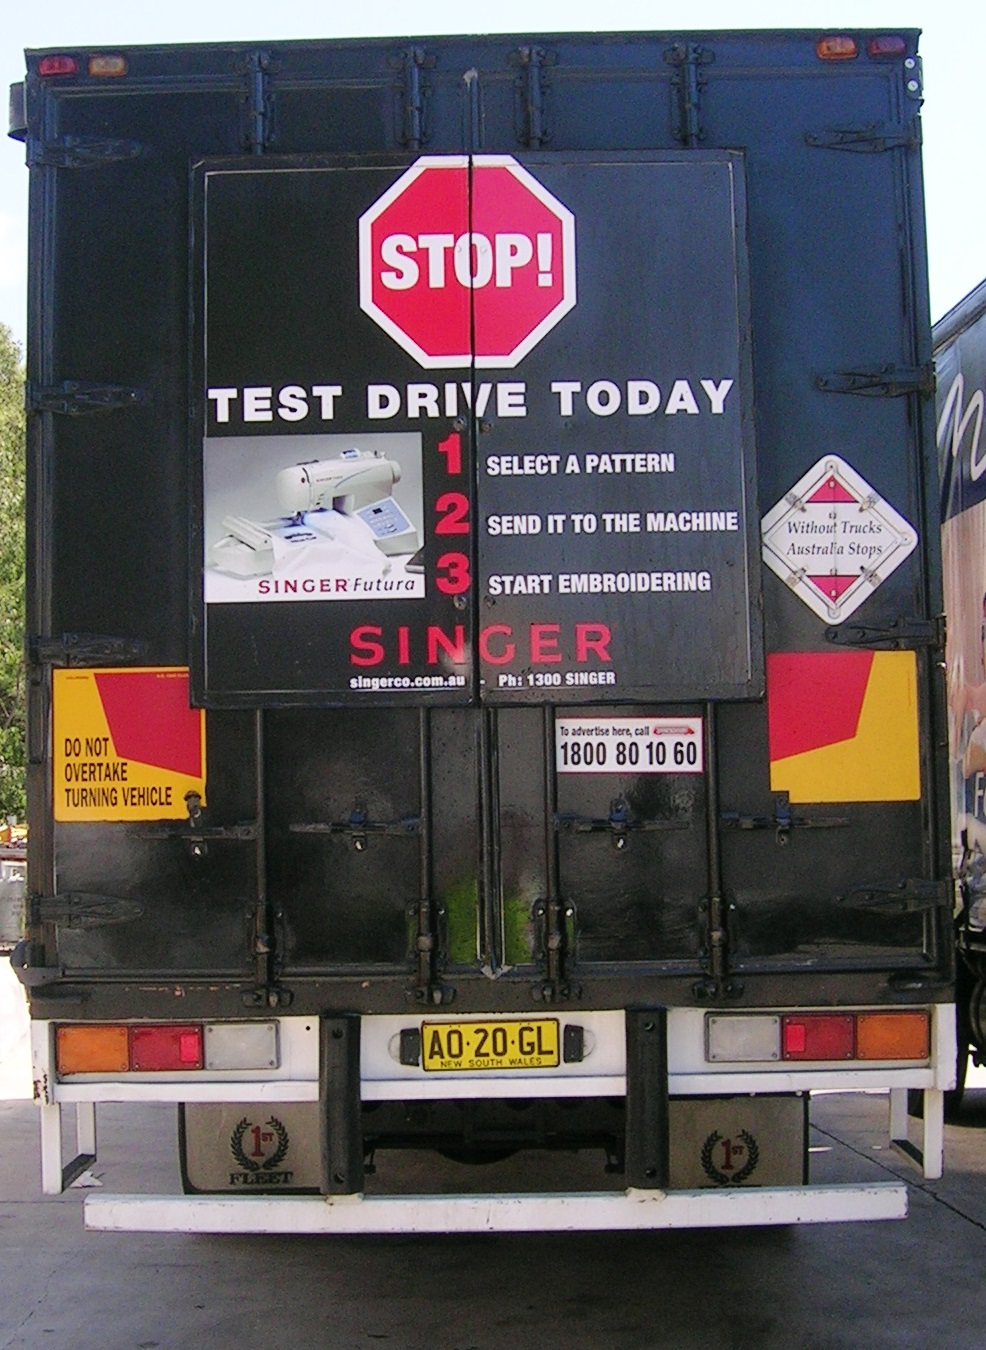 Truck advertising. TruckBack. Singer Sewing Machines. Test Drive Today campaigns. First Fleet Rigid. Small frame.